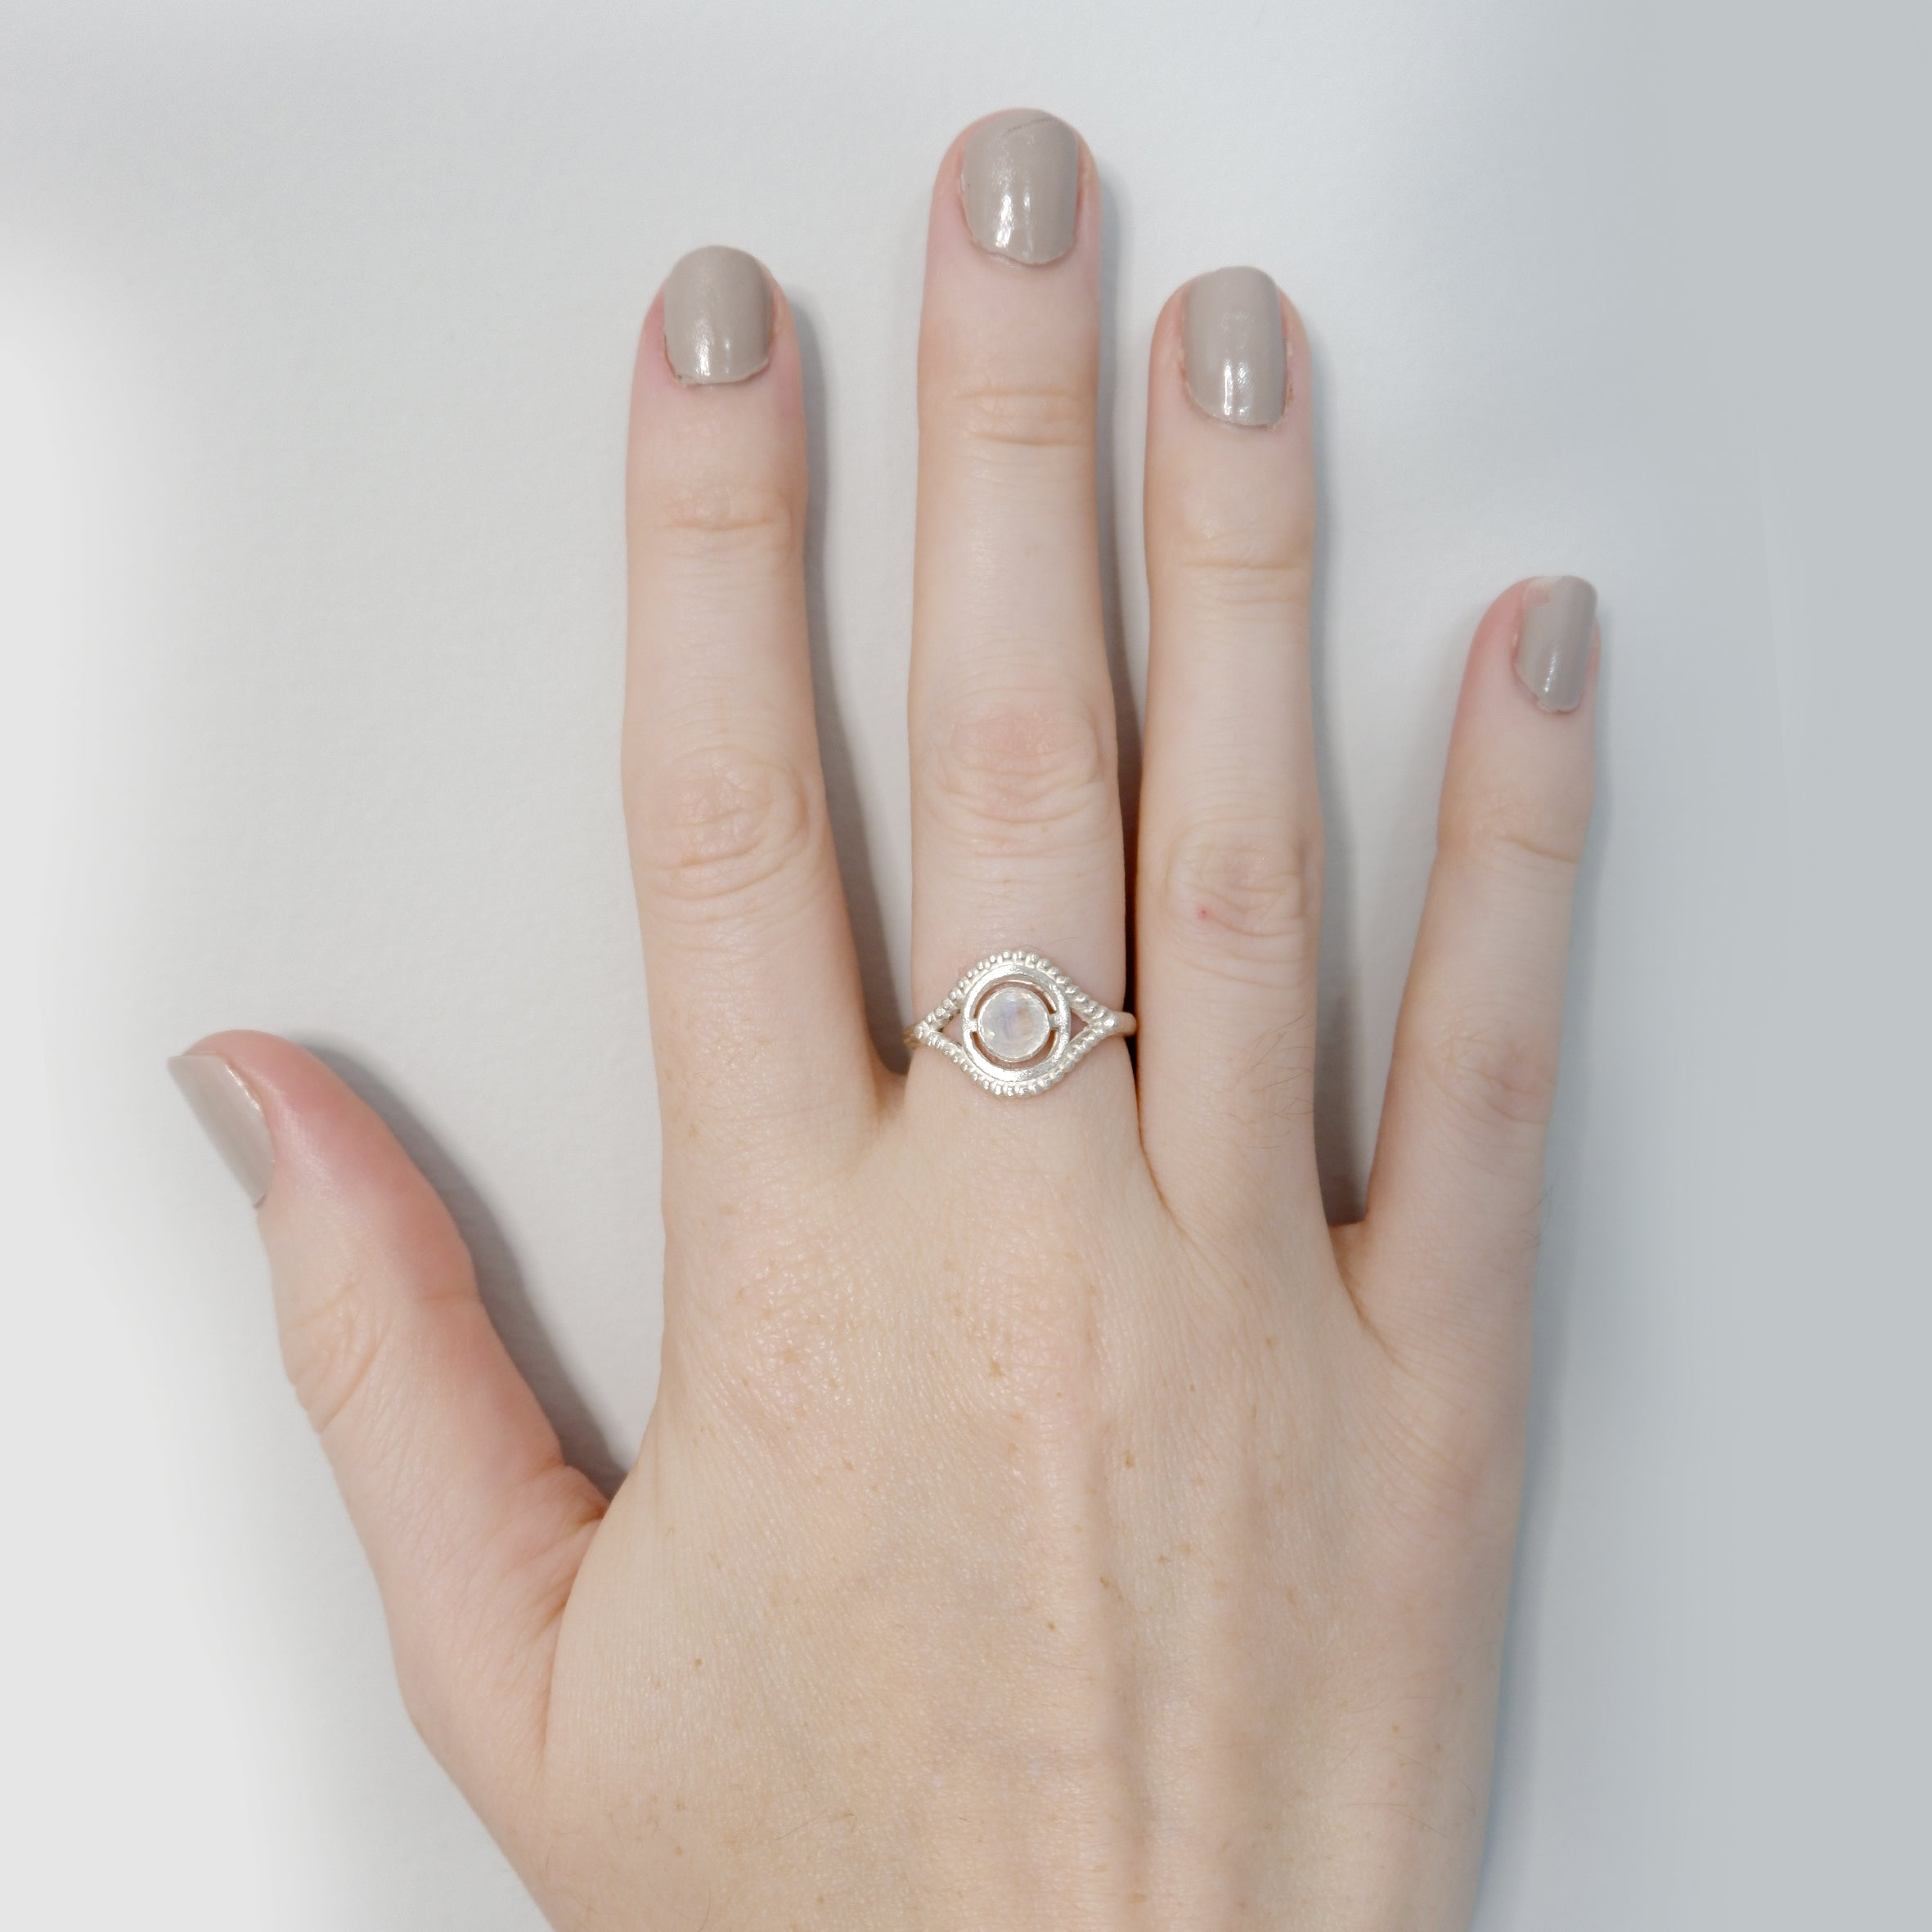 Hunt Of Hounds Nyx Ring. Eye ocular shape with moonstone. On model.